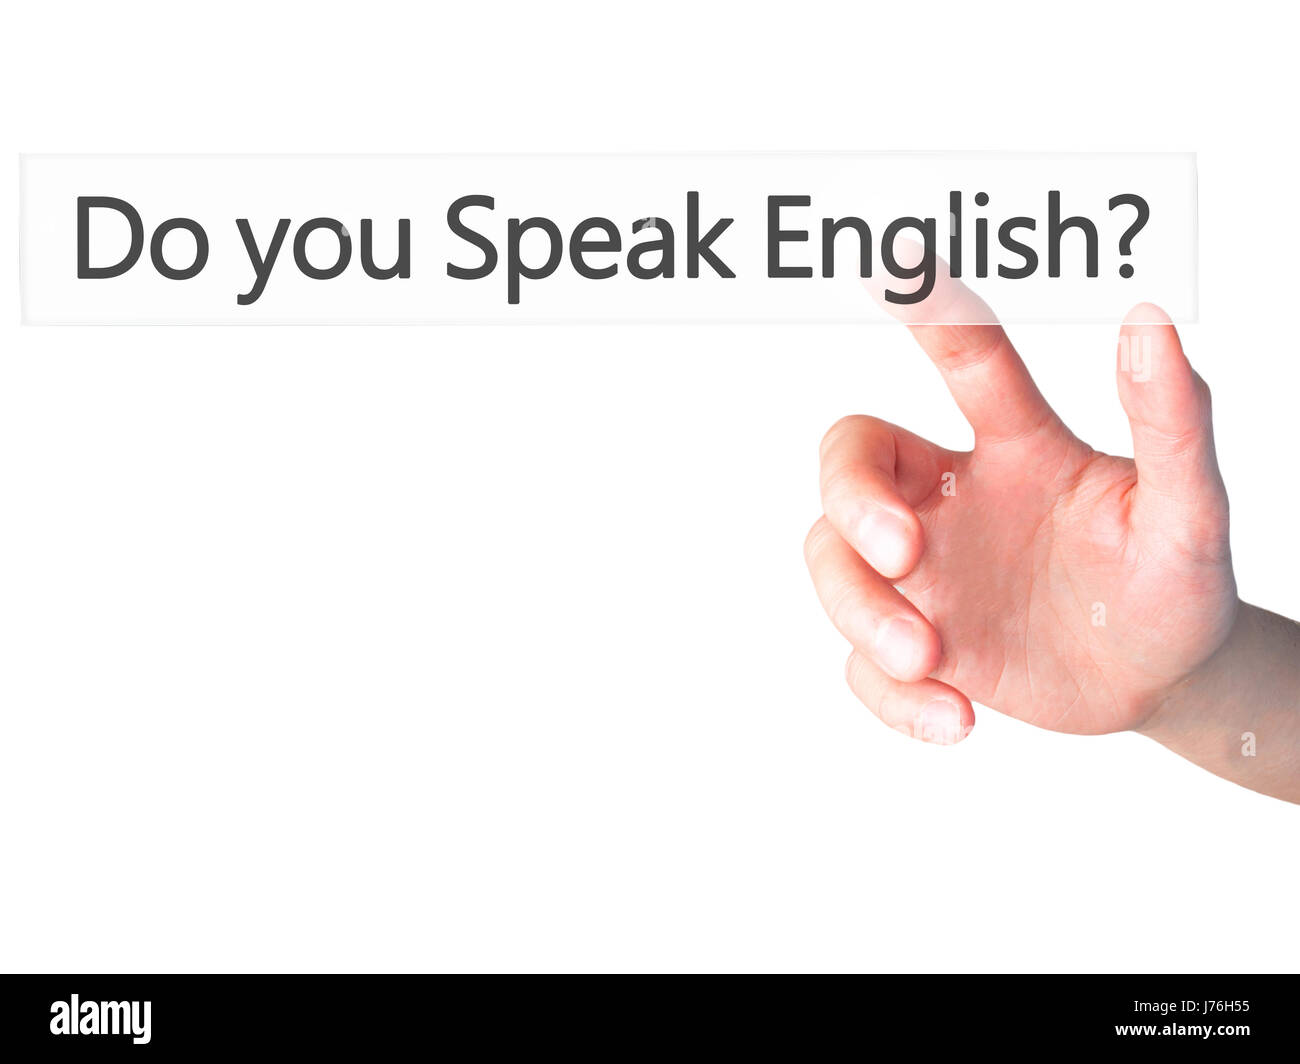 Do you Speak English ? - Hand pressing a button on blurred background concept . Business, technology, internet concept. - Stock Image